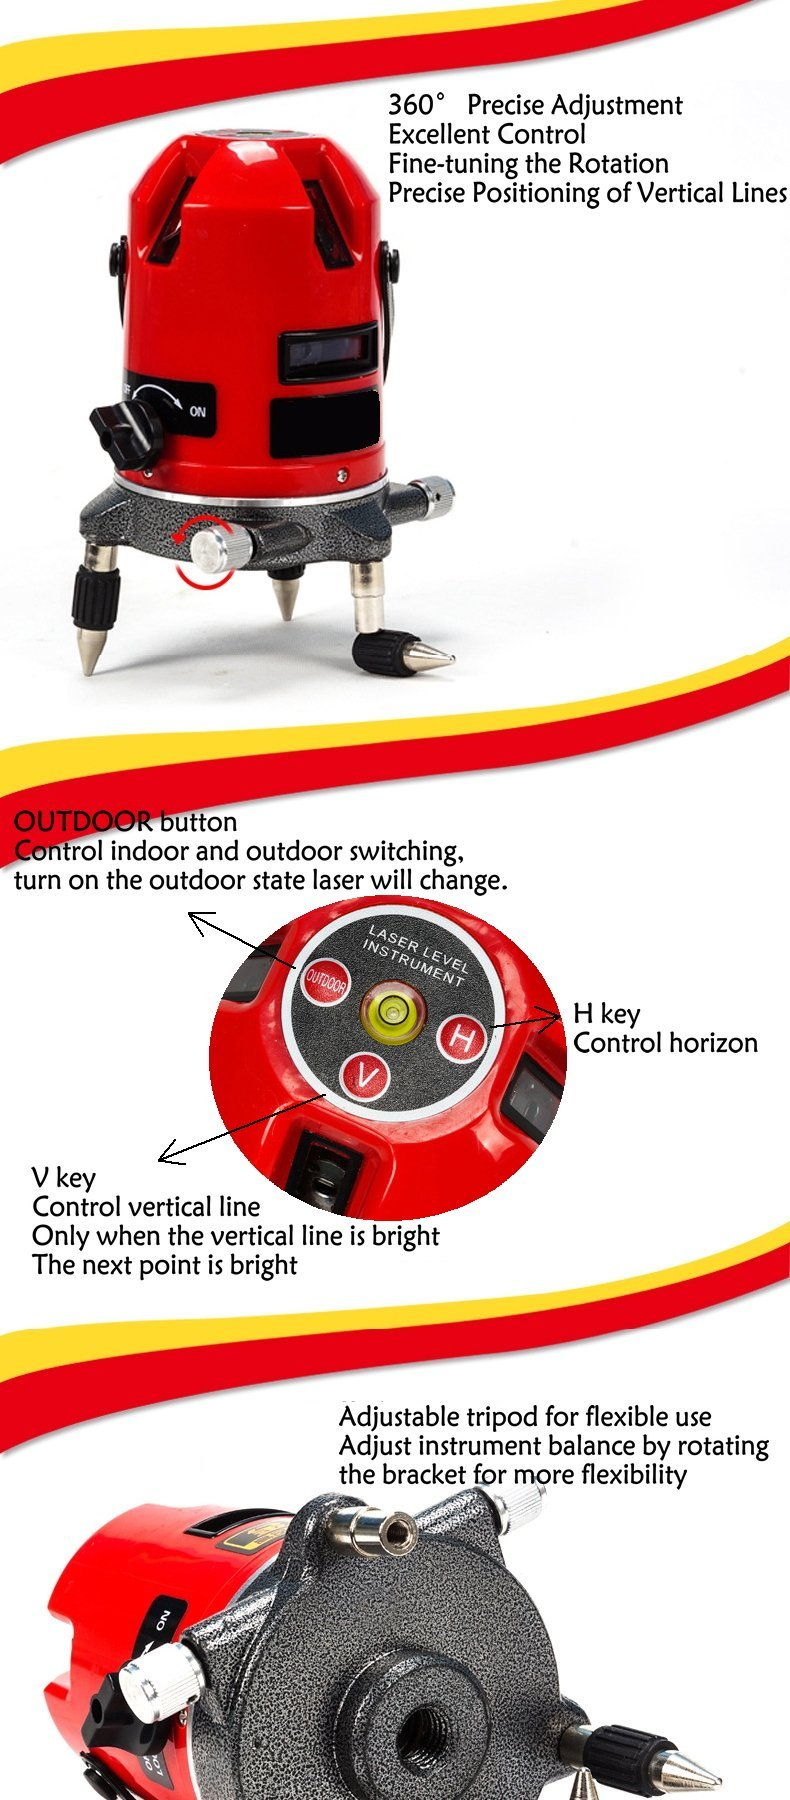 5 lines 6 points Multipurpose laser level,Automatic Self Leveling, 360 degree rotary cross laser line level,with outdoor mode and tilt mode (Laser Level)